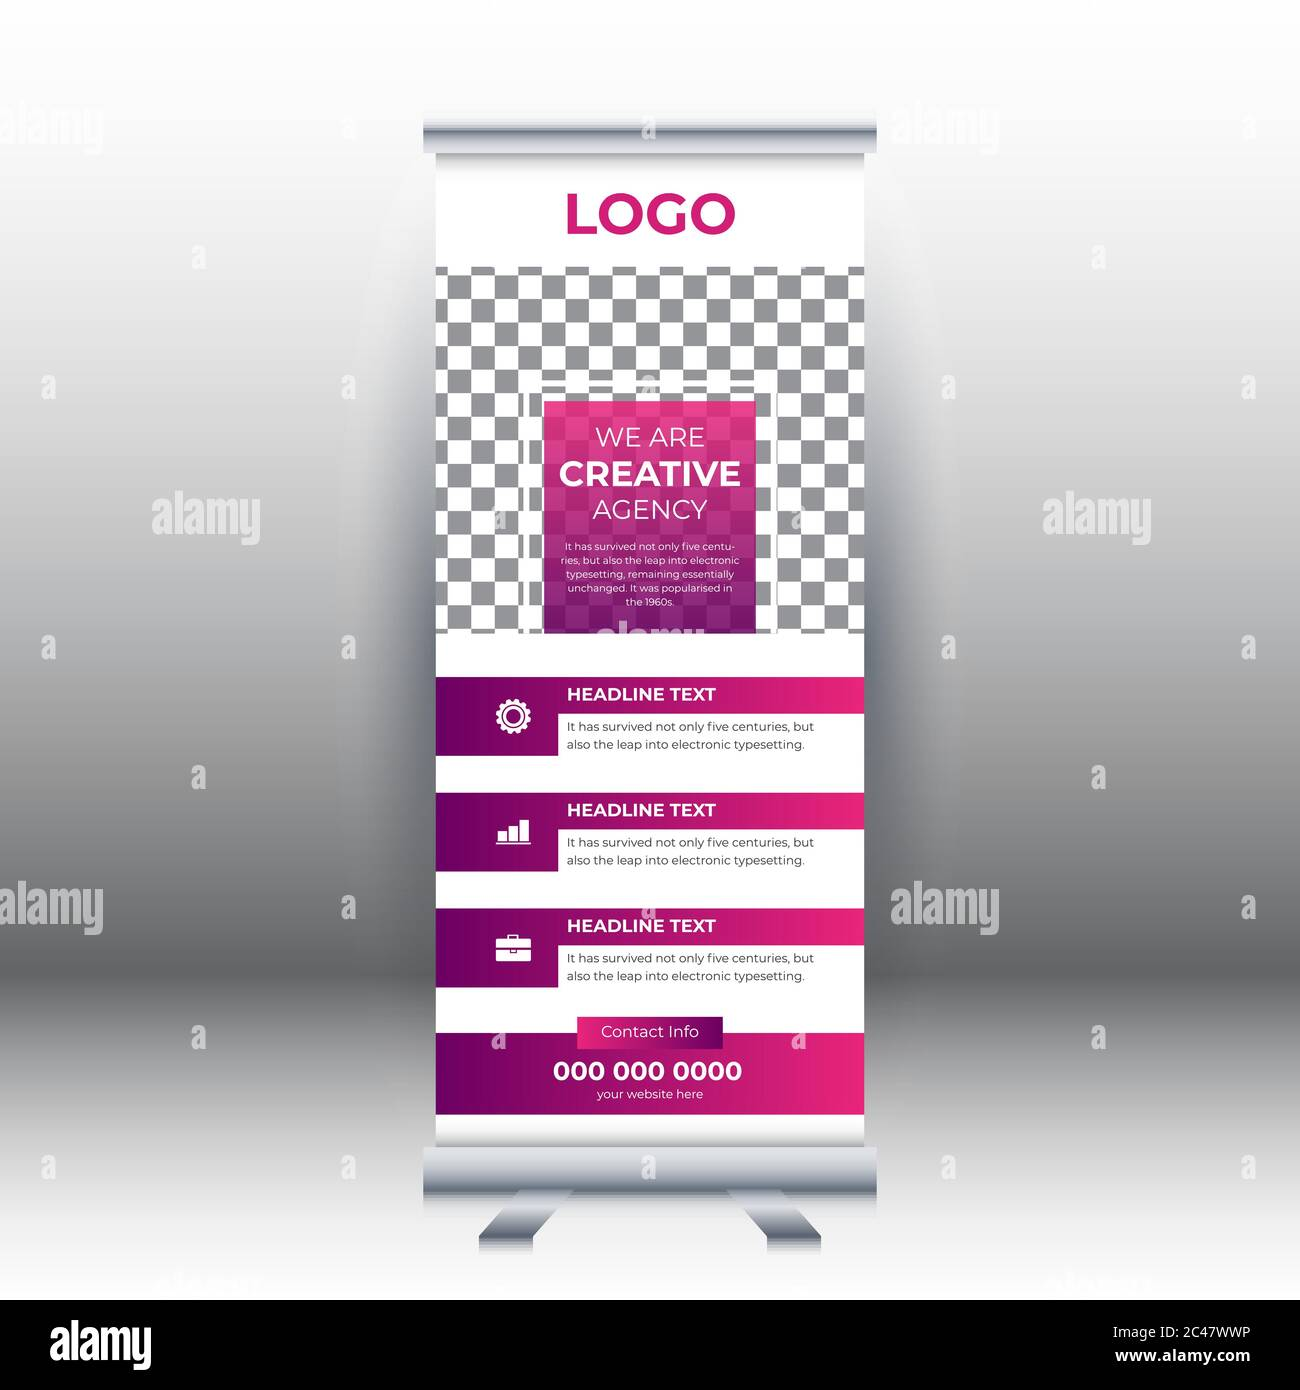 Creative Abstract Modern Corporate Business Vertical Roll Up Banner Design Template Vector Illustration Concept Exhibition Advertising Presentation Stock Vector Image Art Alamy